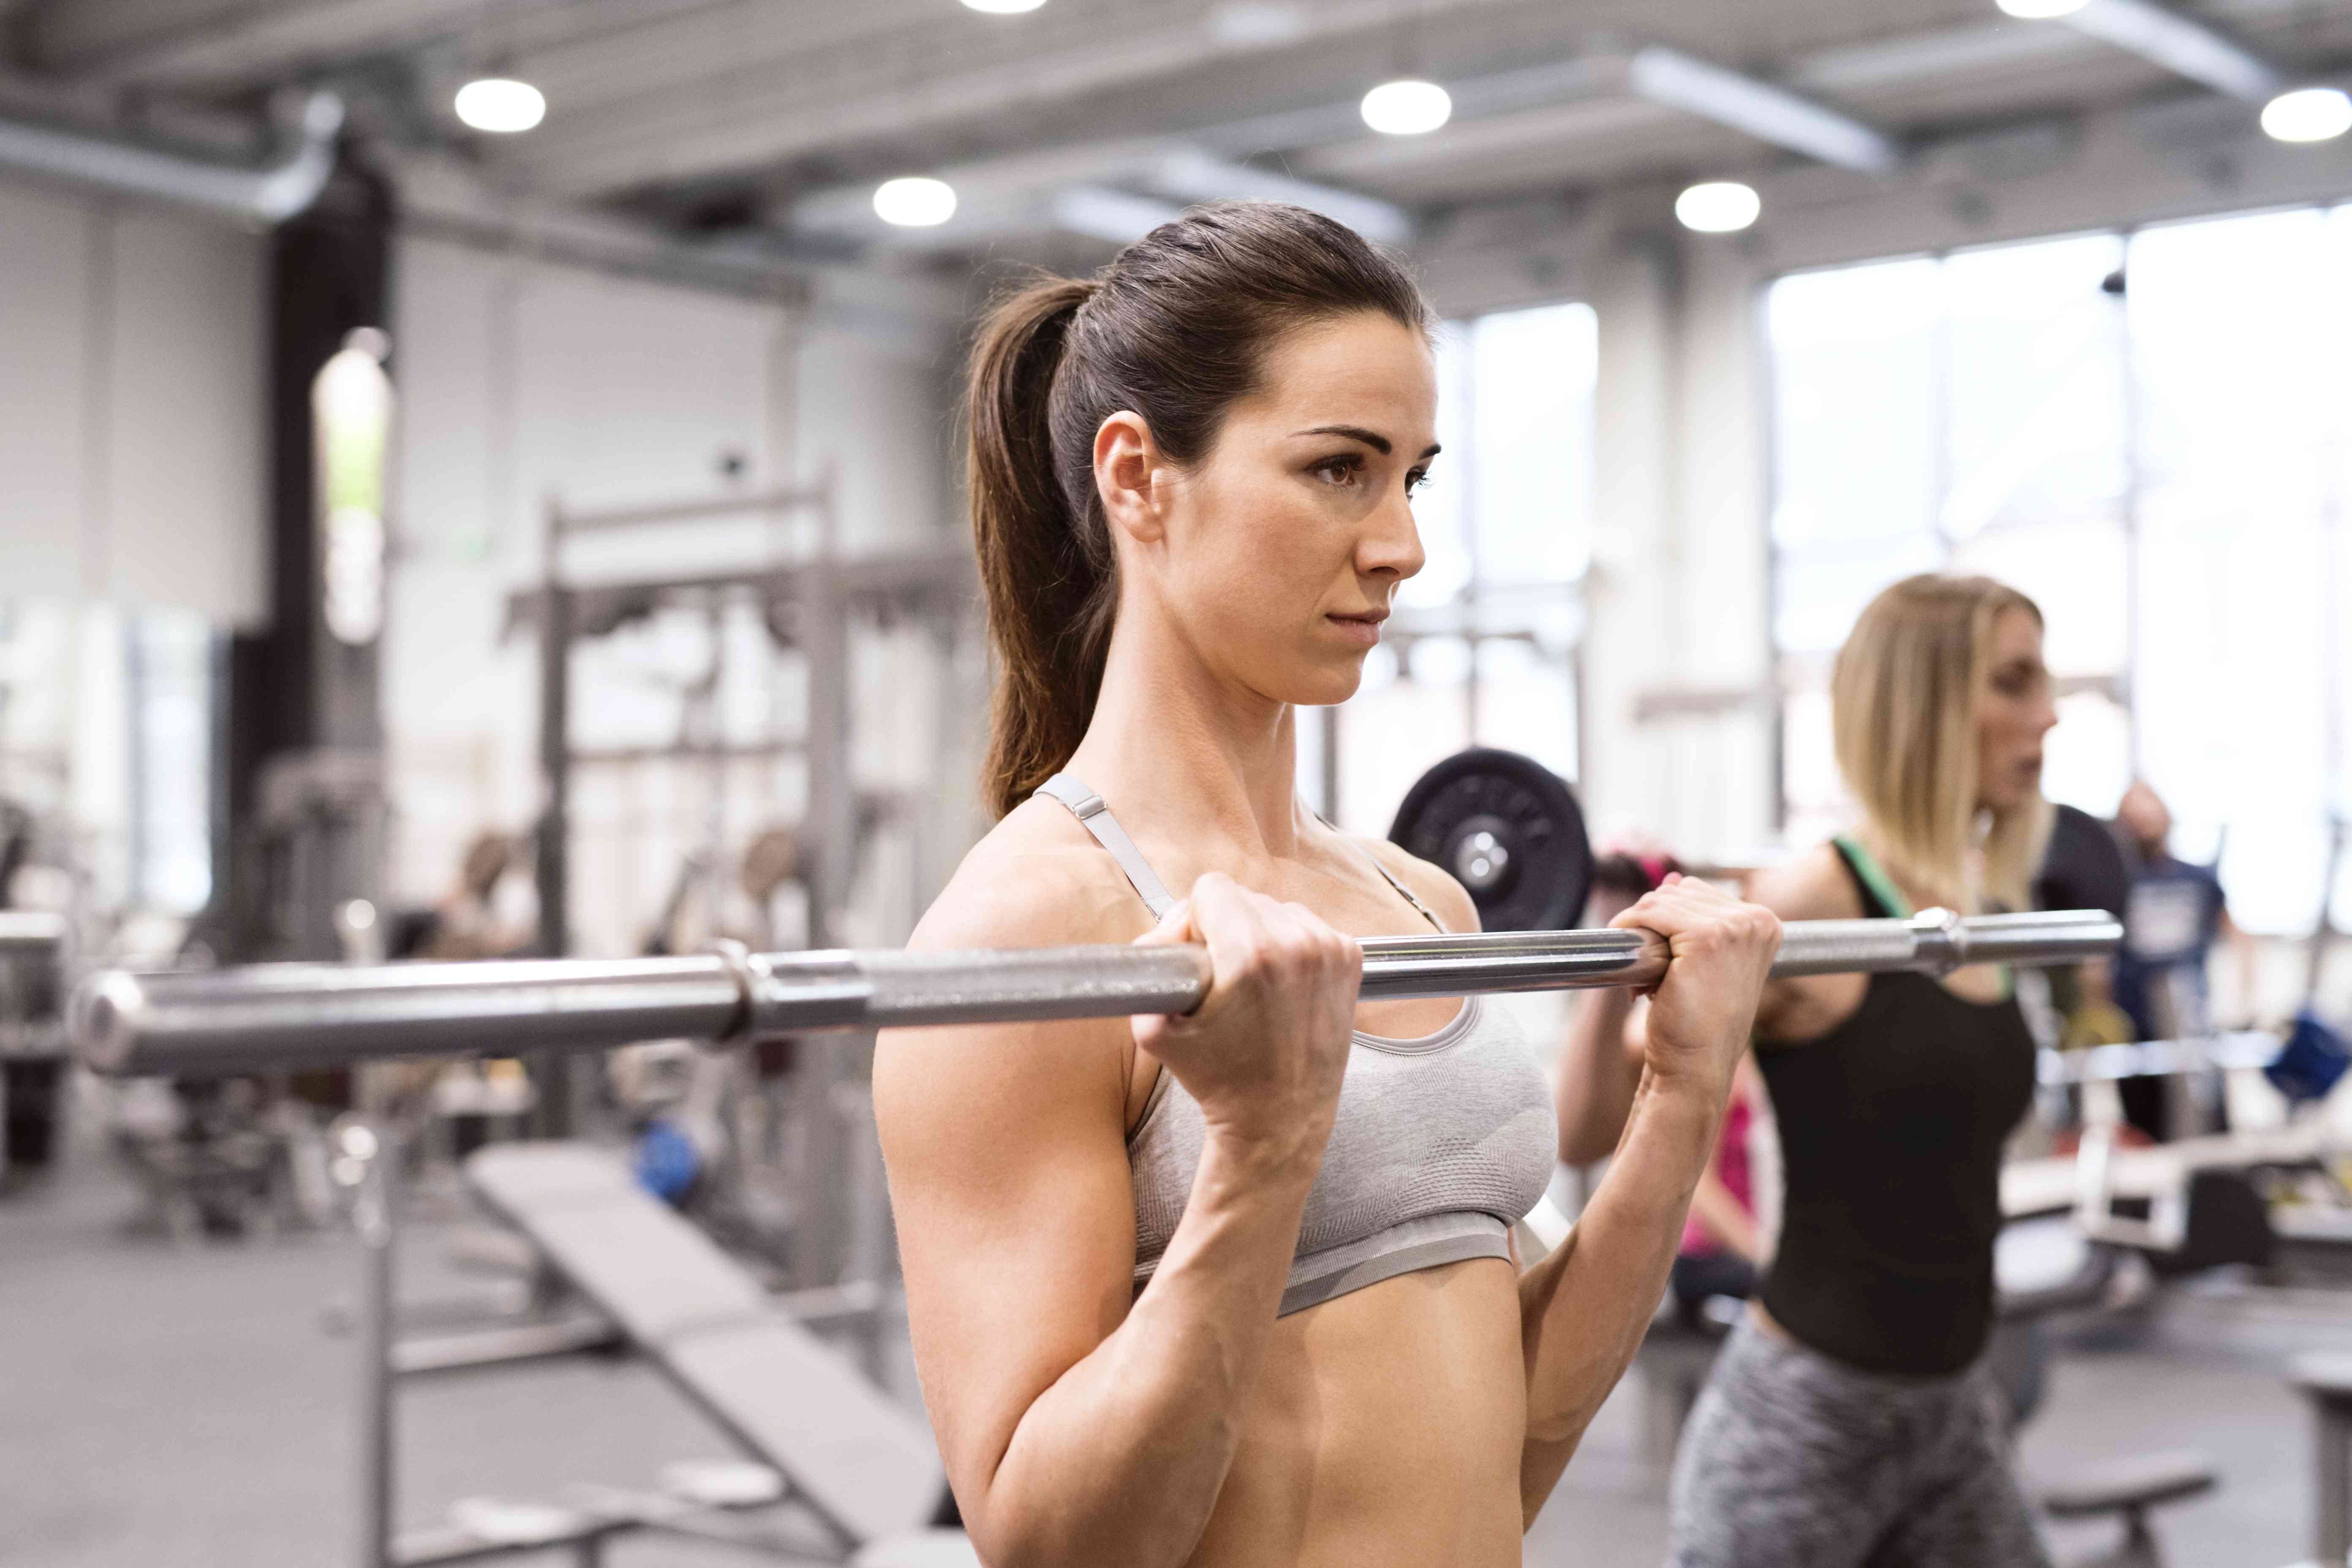 Young woman lifting weights in gym